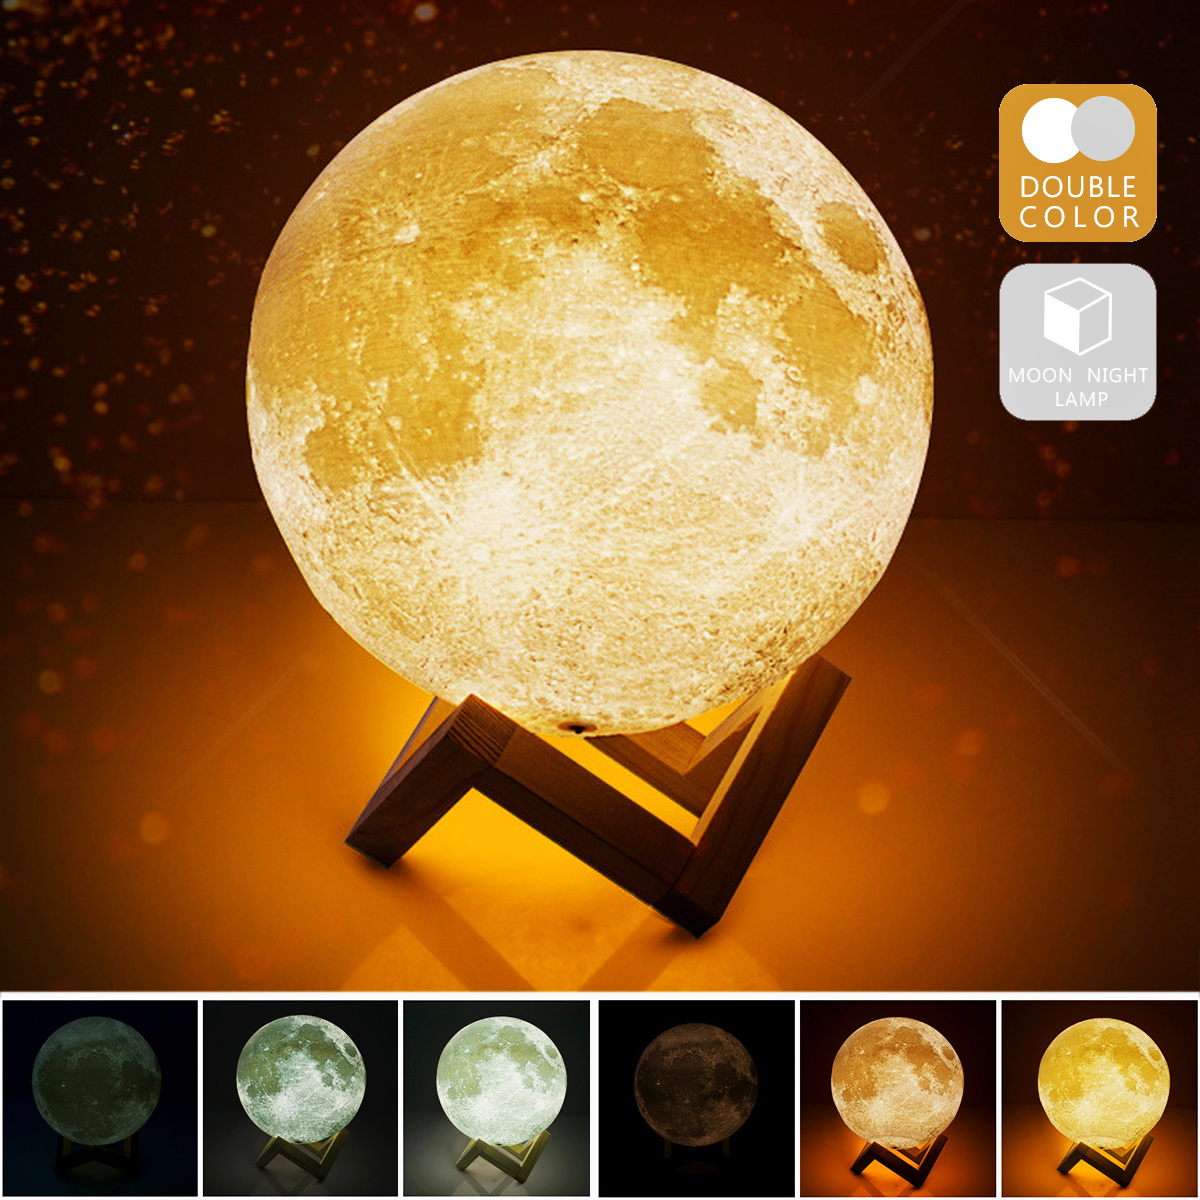 3D Print Moon Lamp USB Rechargeable 2 Color Touch Control Novelty Lighting Adjustable Moon Lamp Home Decoration